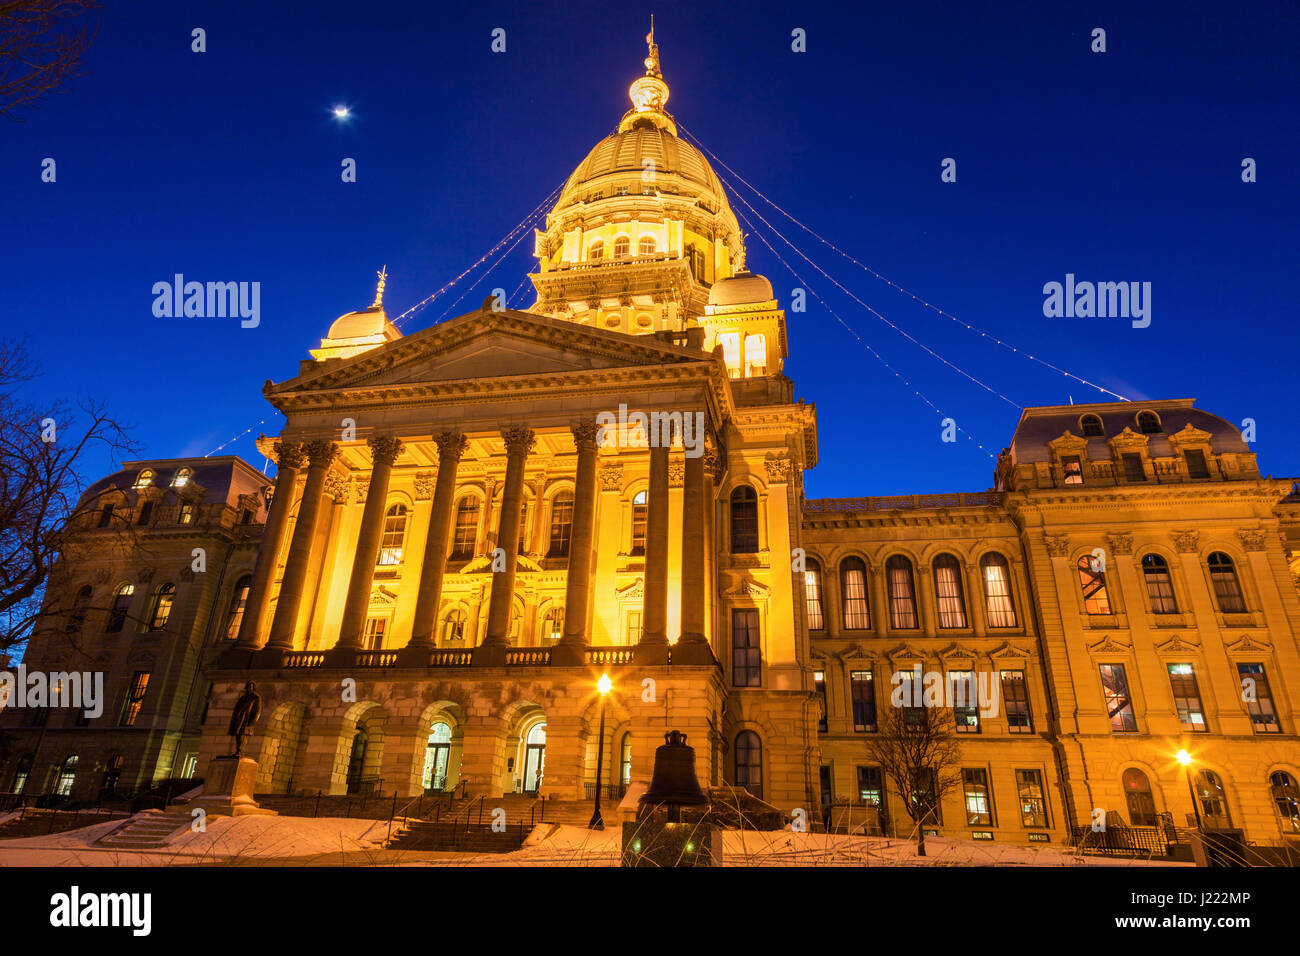 Springfield, Illinois - entrance to State Capitol Building. Springfield, Illinois, USA. - Stock Image